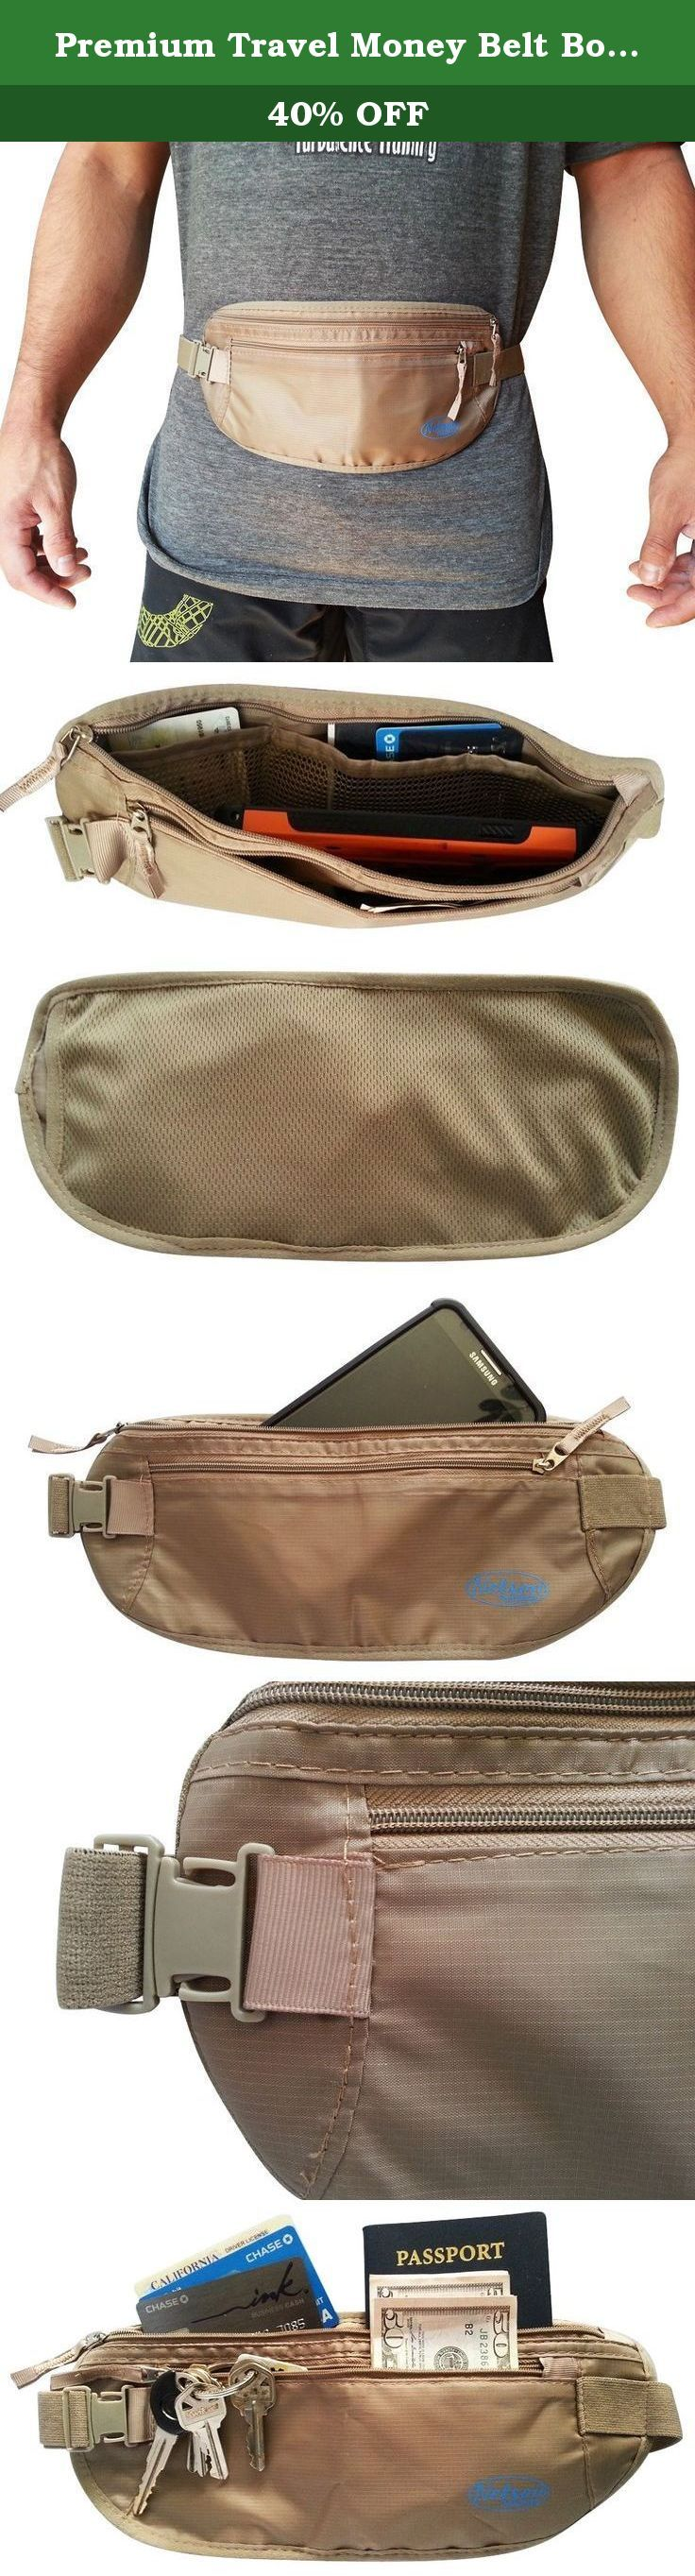 Premium Travel Money Belt Body Wallet with RFID Protection and Bonus Gift Dream Vacations You Can Afford E Book, Holds All Cell Phones and iphone 6 Plus. Our premium money belt has 2 separate compartments for your credit cards, cash and valuables on the inside. Our travel wallet is made to be worn under clothing with RFID blocking material to foil thieves. They won't even know you have it on! There is a soft breathable mesh panel at to keep you dry in all climates. Holds all cell phones...